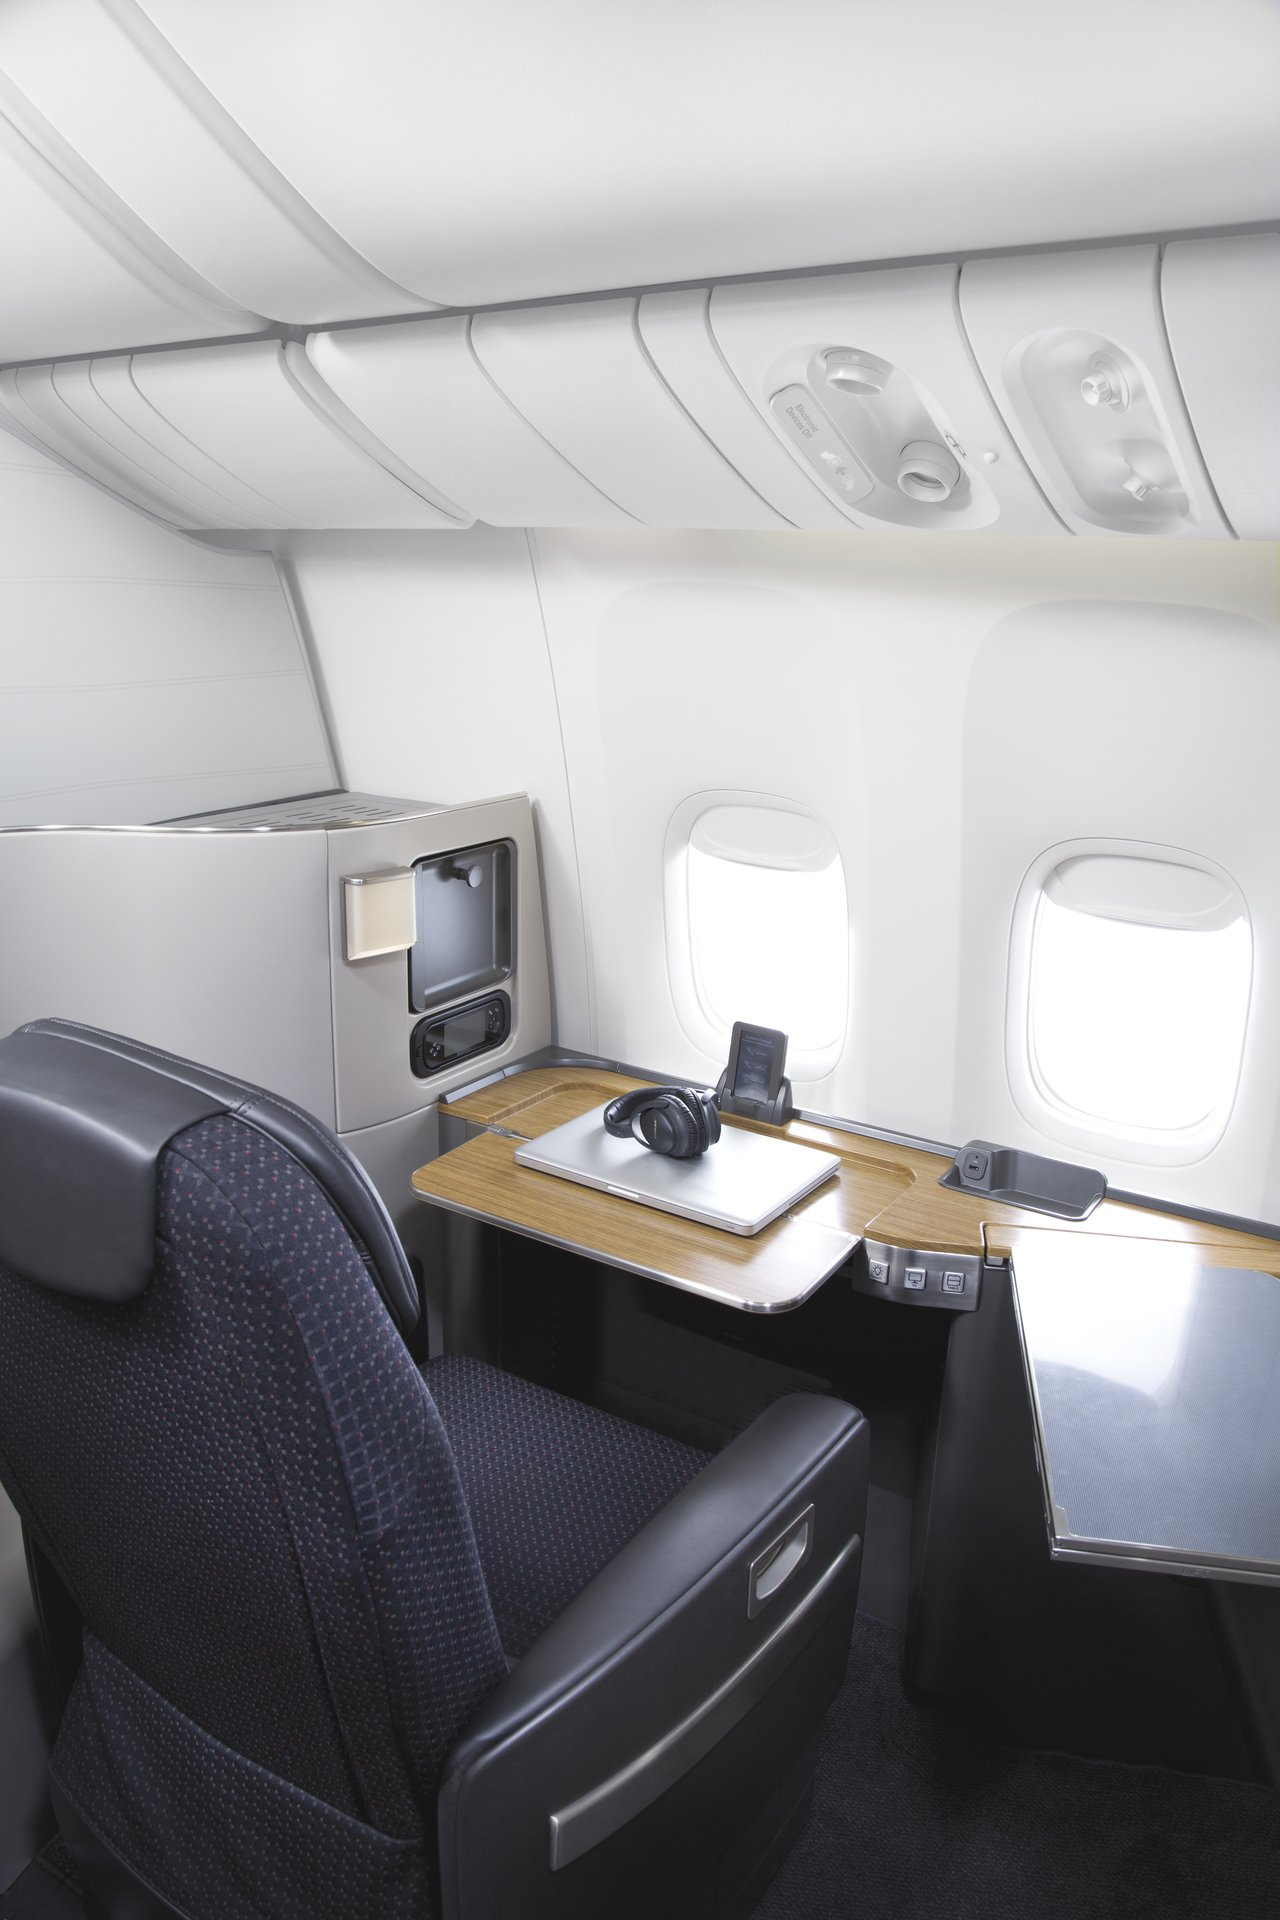 A first class chair on a Boeing 777 turned to face the window and desk in office mode.